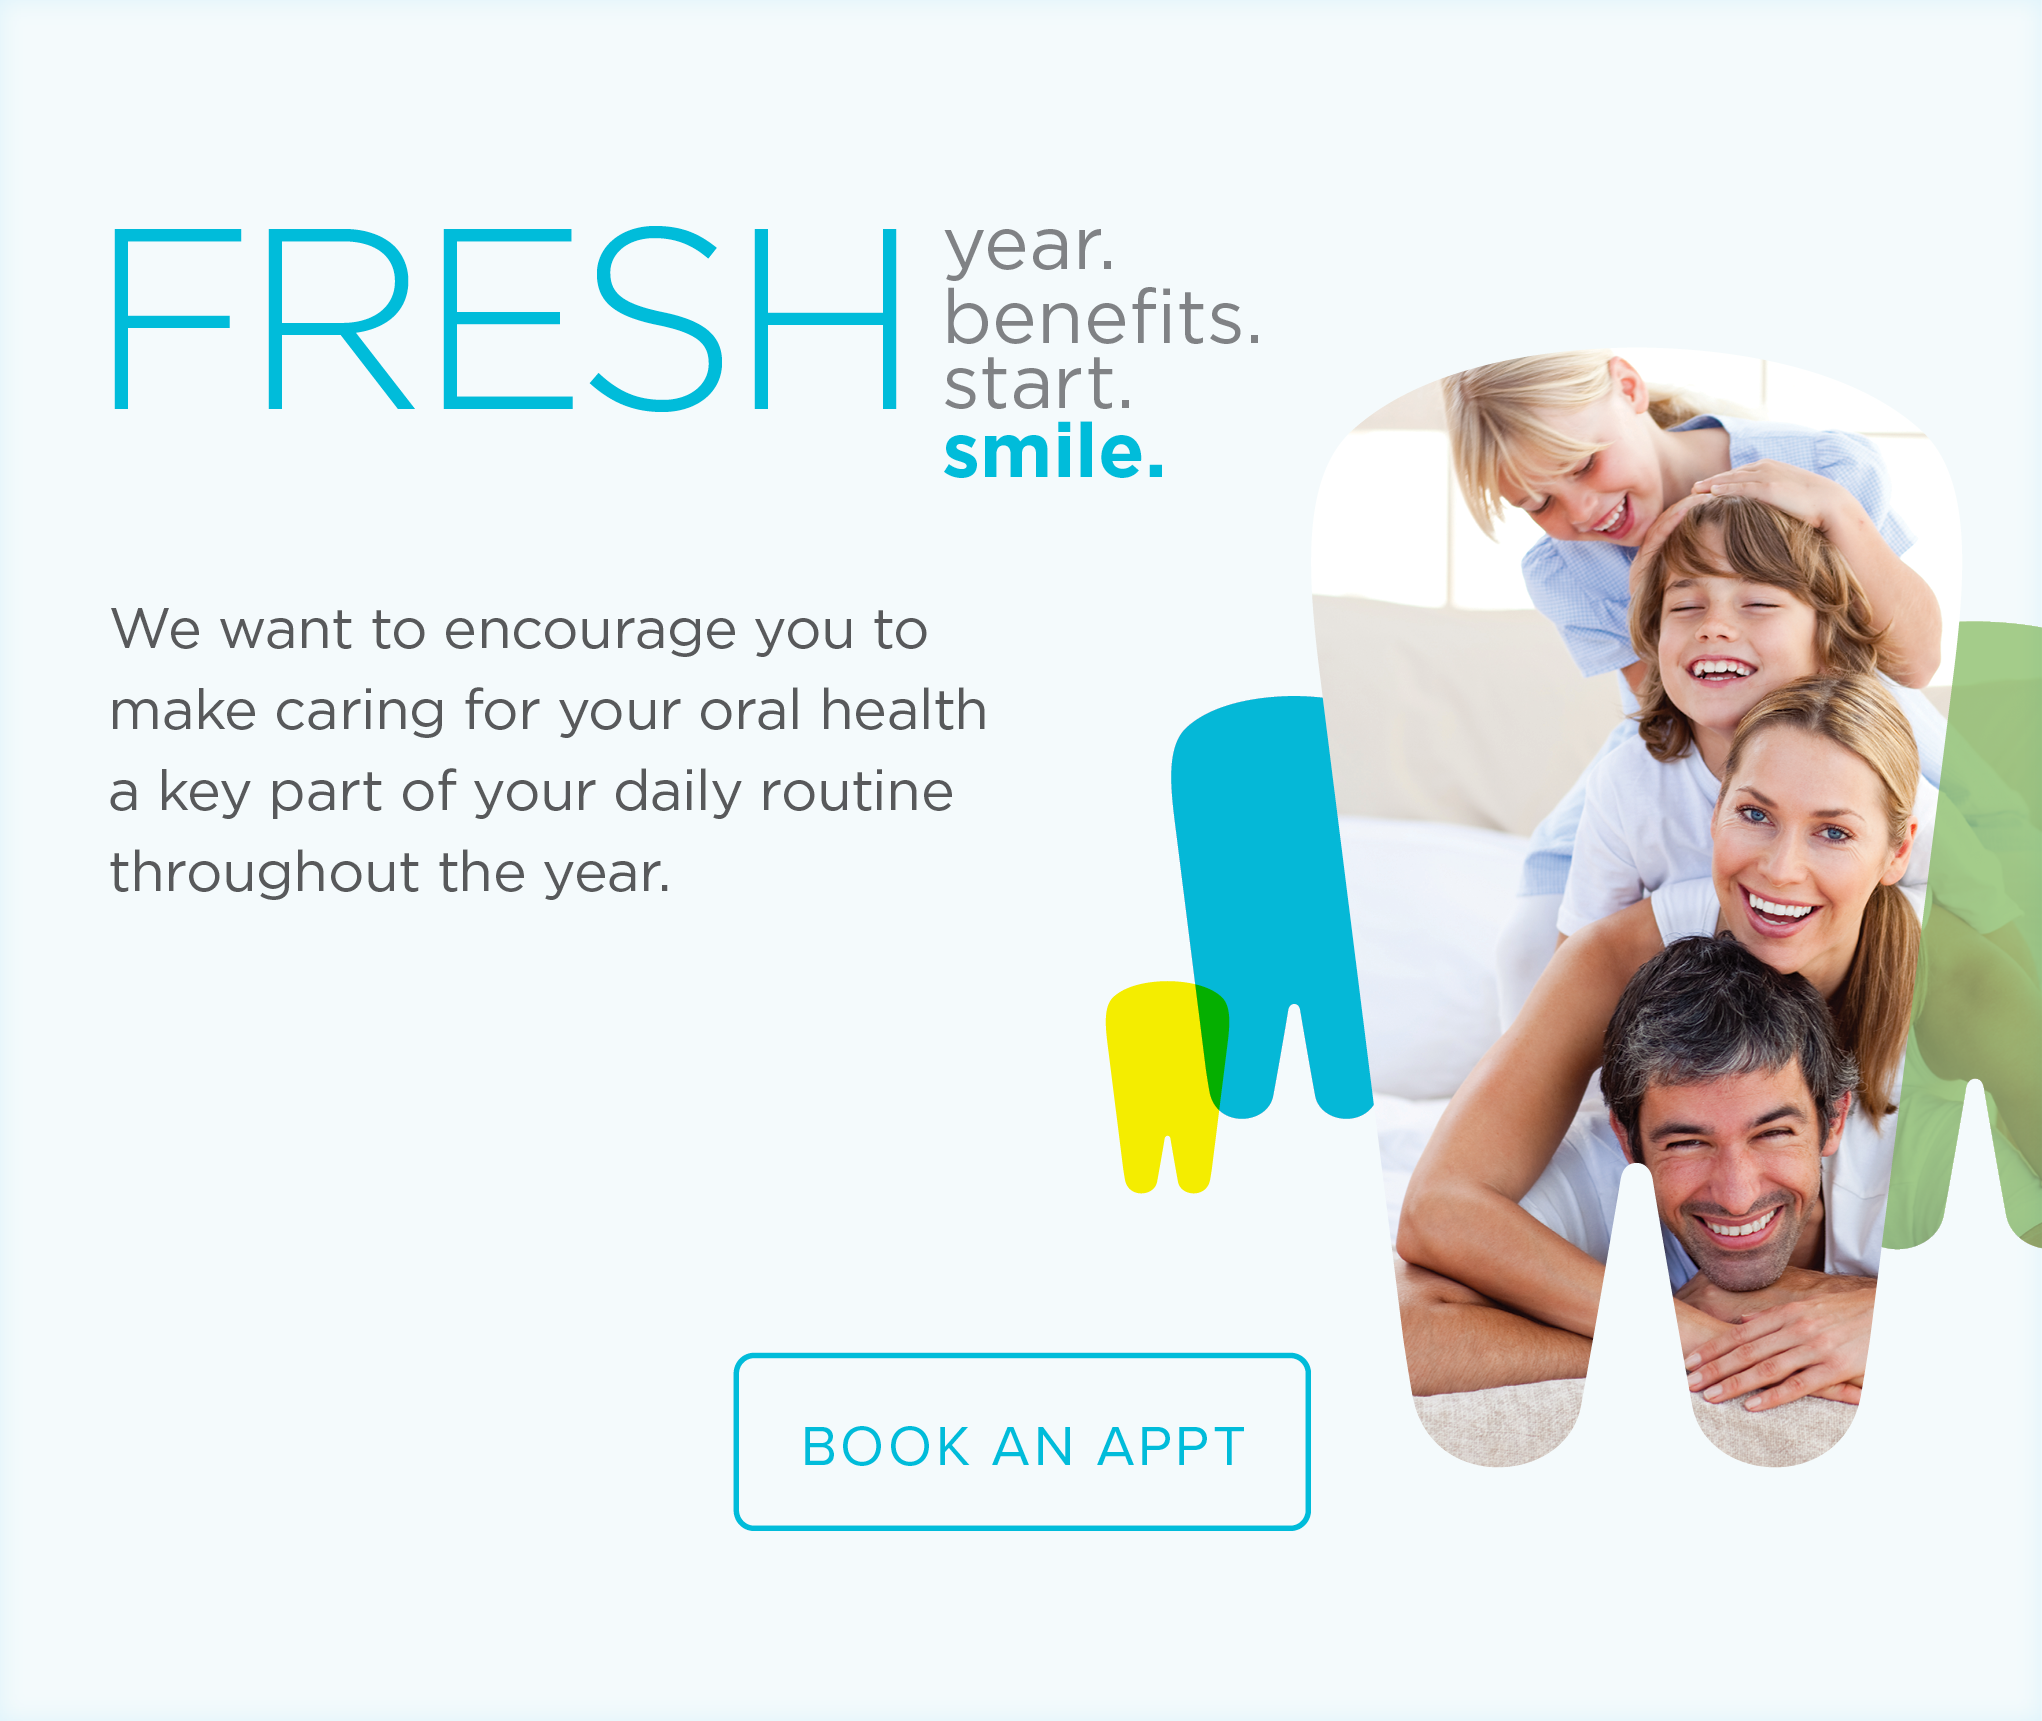 Burleson Modern Dentistry - Make the Most of Your Benefits